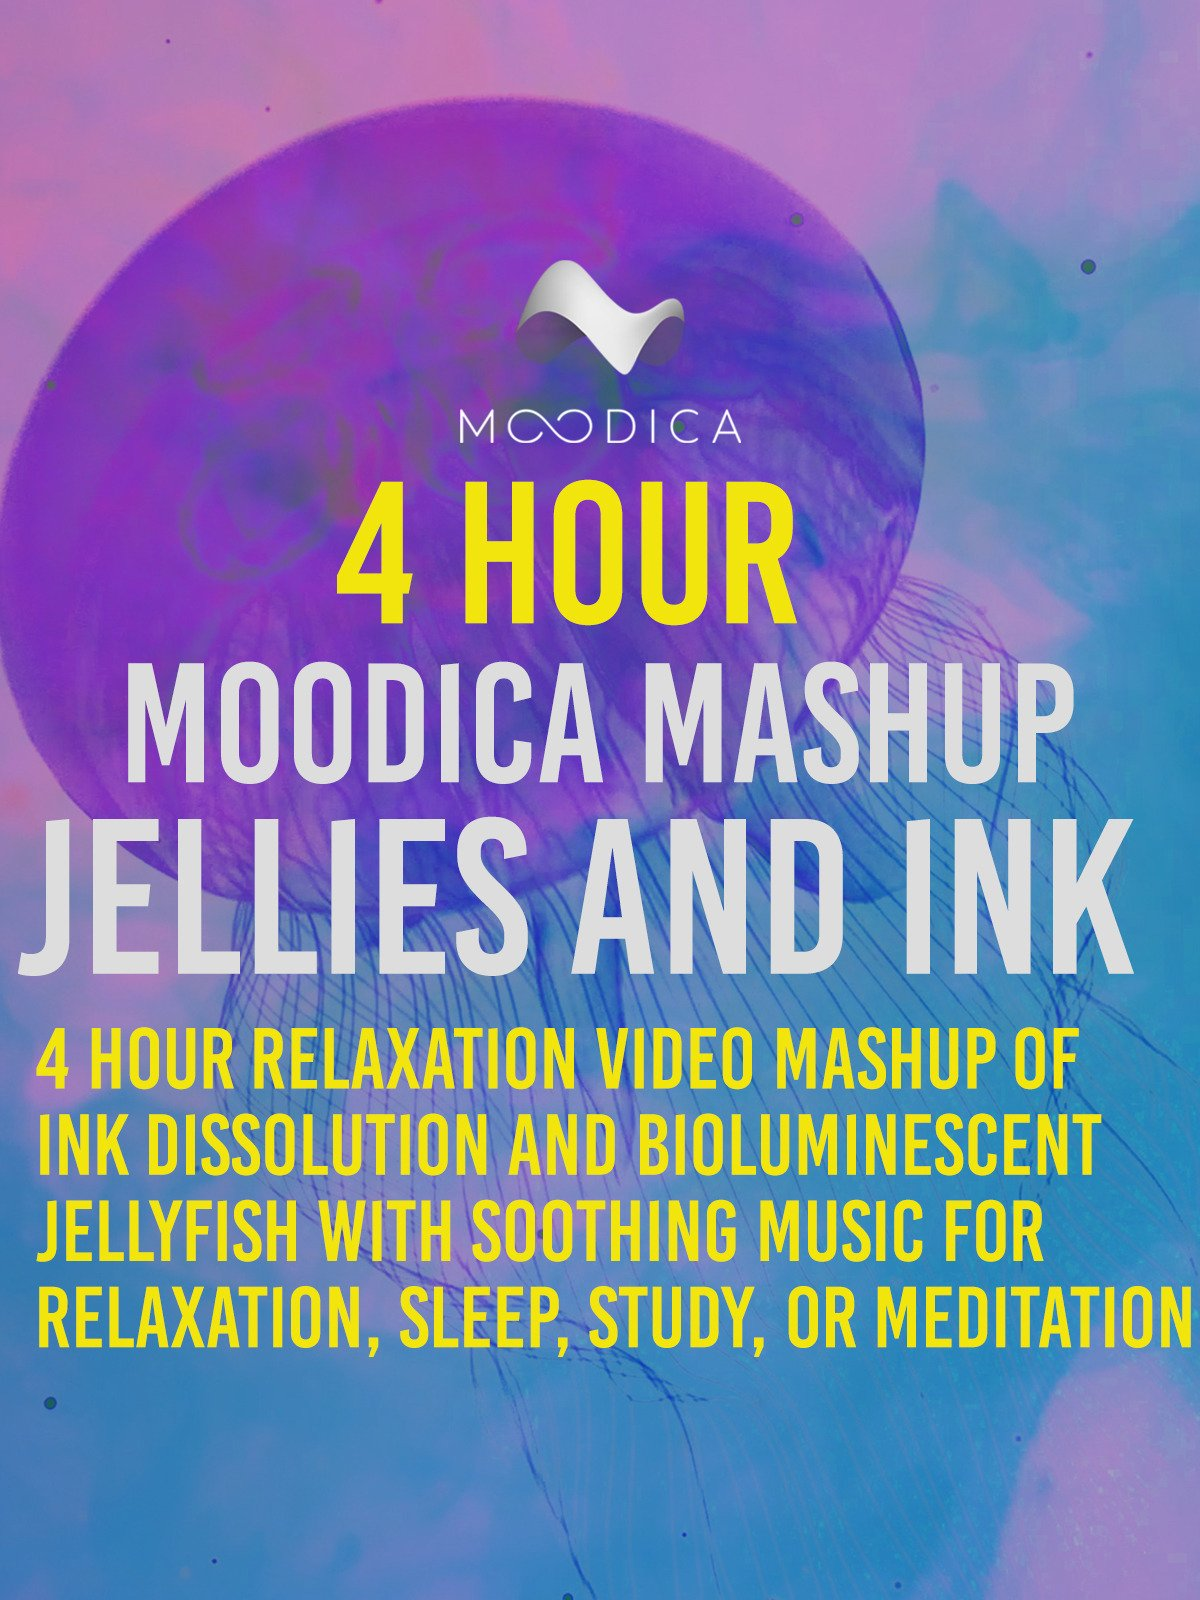 4 Hour Moodica Mashup: Jellies and Ink: 4 Hour Relaxation Video Mashup of Ink Dissolution and Bioluminescent Jellyfish with Soothing Music for Relaxation, Sleep, Study, or Meditation